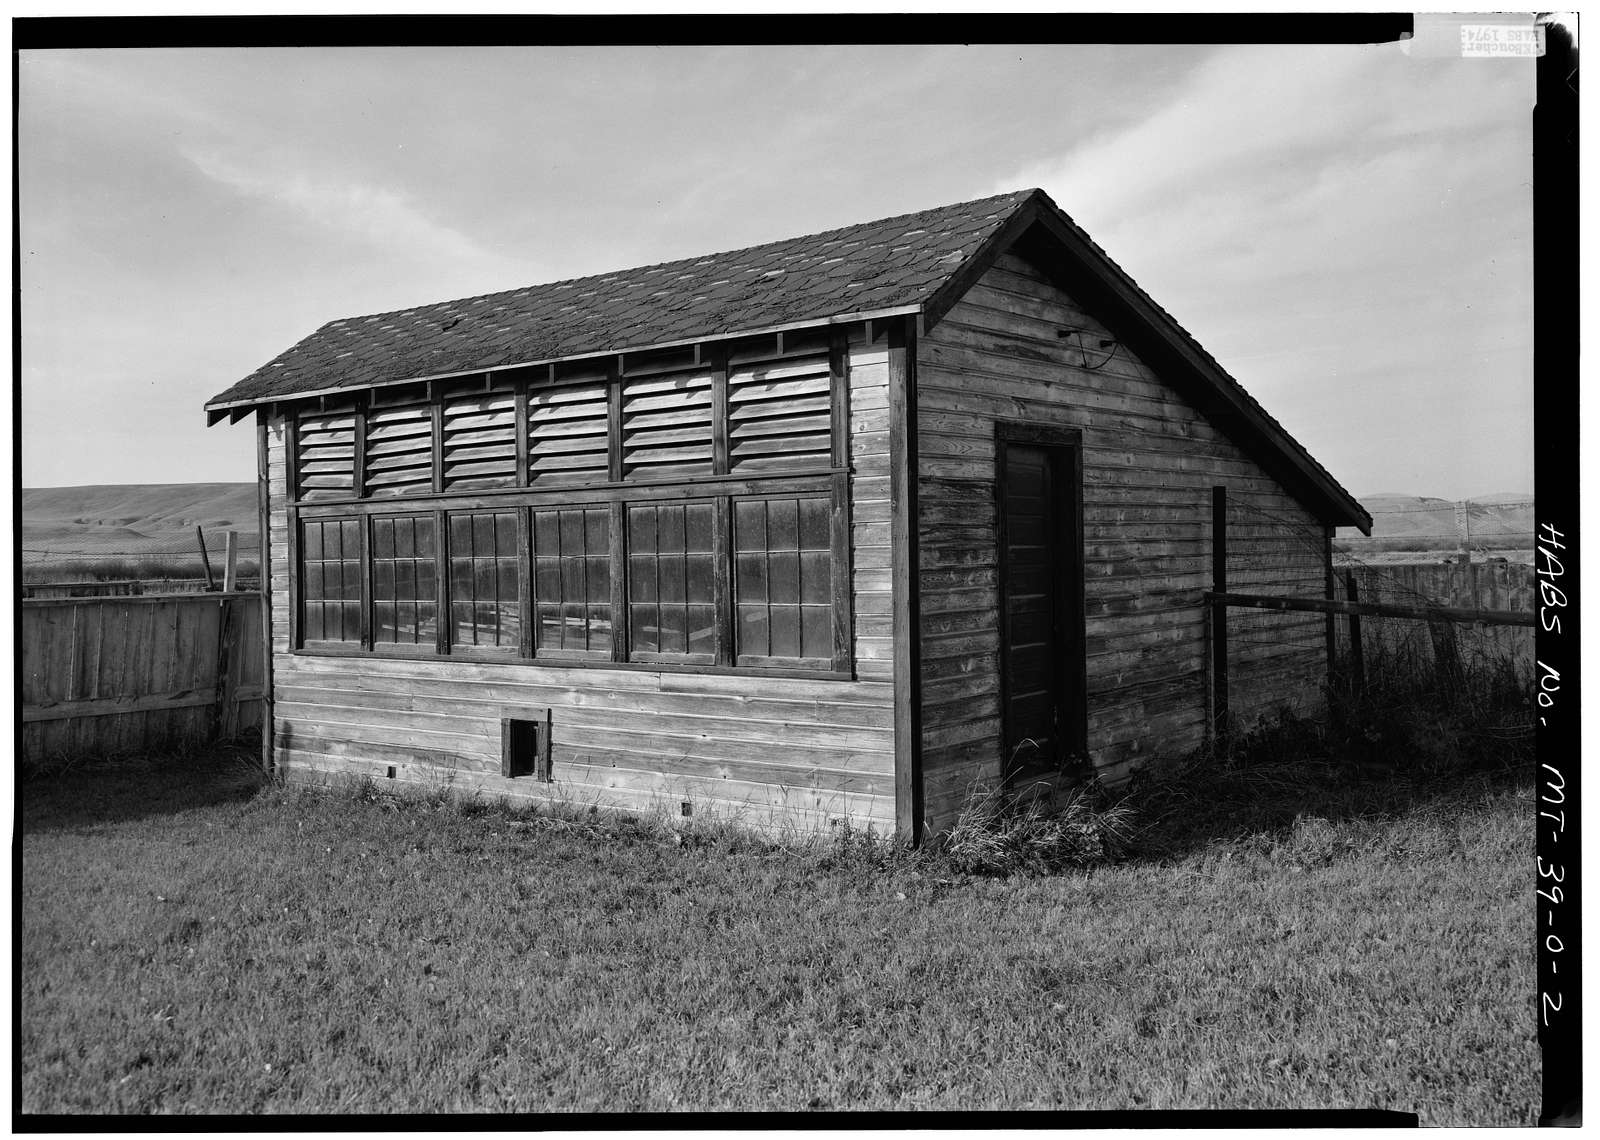 Grant-Kohrs Ranch, Chicken House, Highway 10, Deer Lodge, Powell County, MT